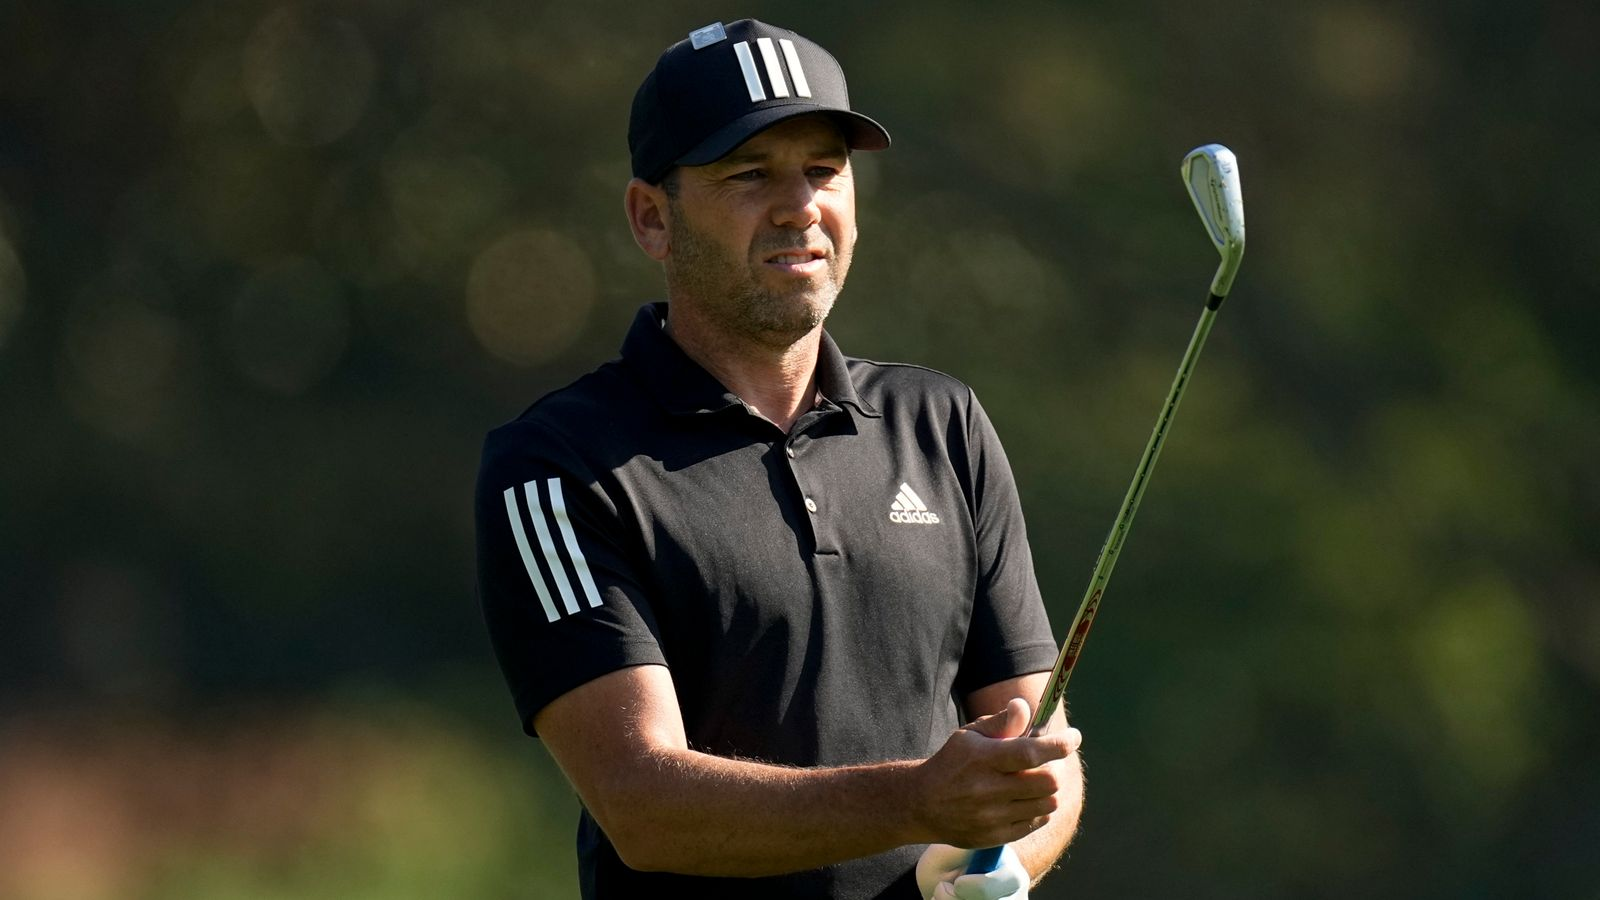 The Masters: Sergio Garcia raring to go after missing 2020 Masters due to coronavirus